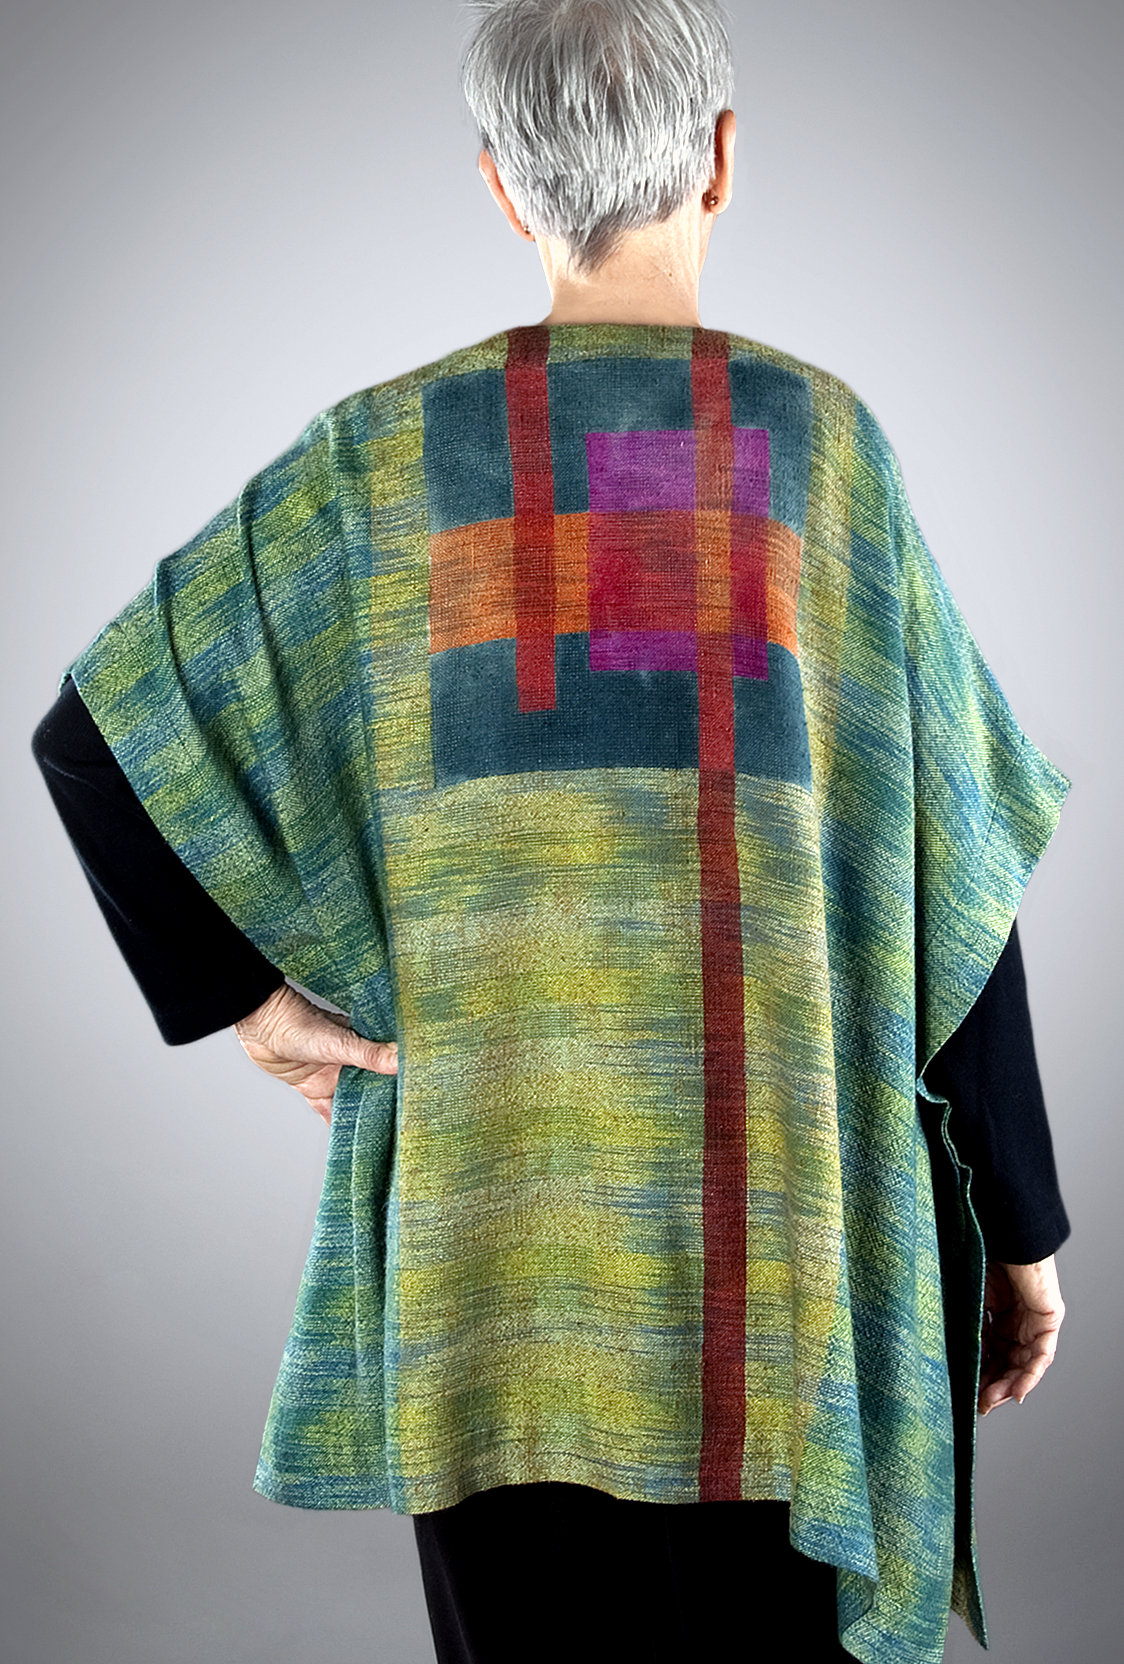 Neal The Weaver, Wearable Hand Woven Art-001.jpg